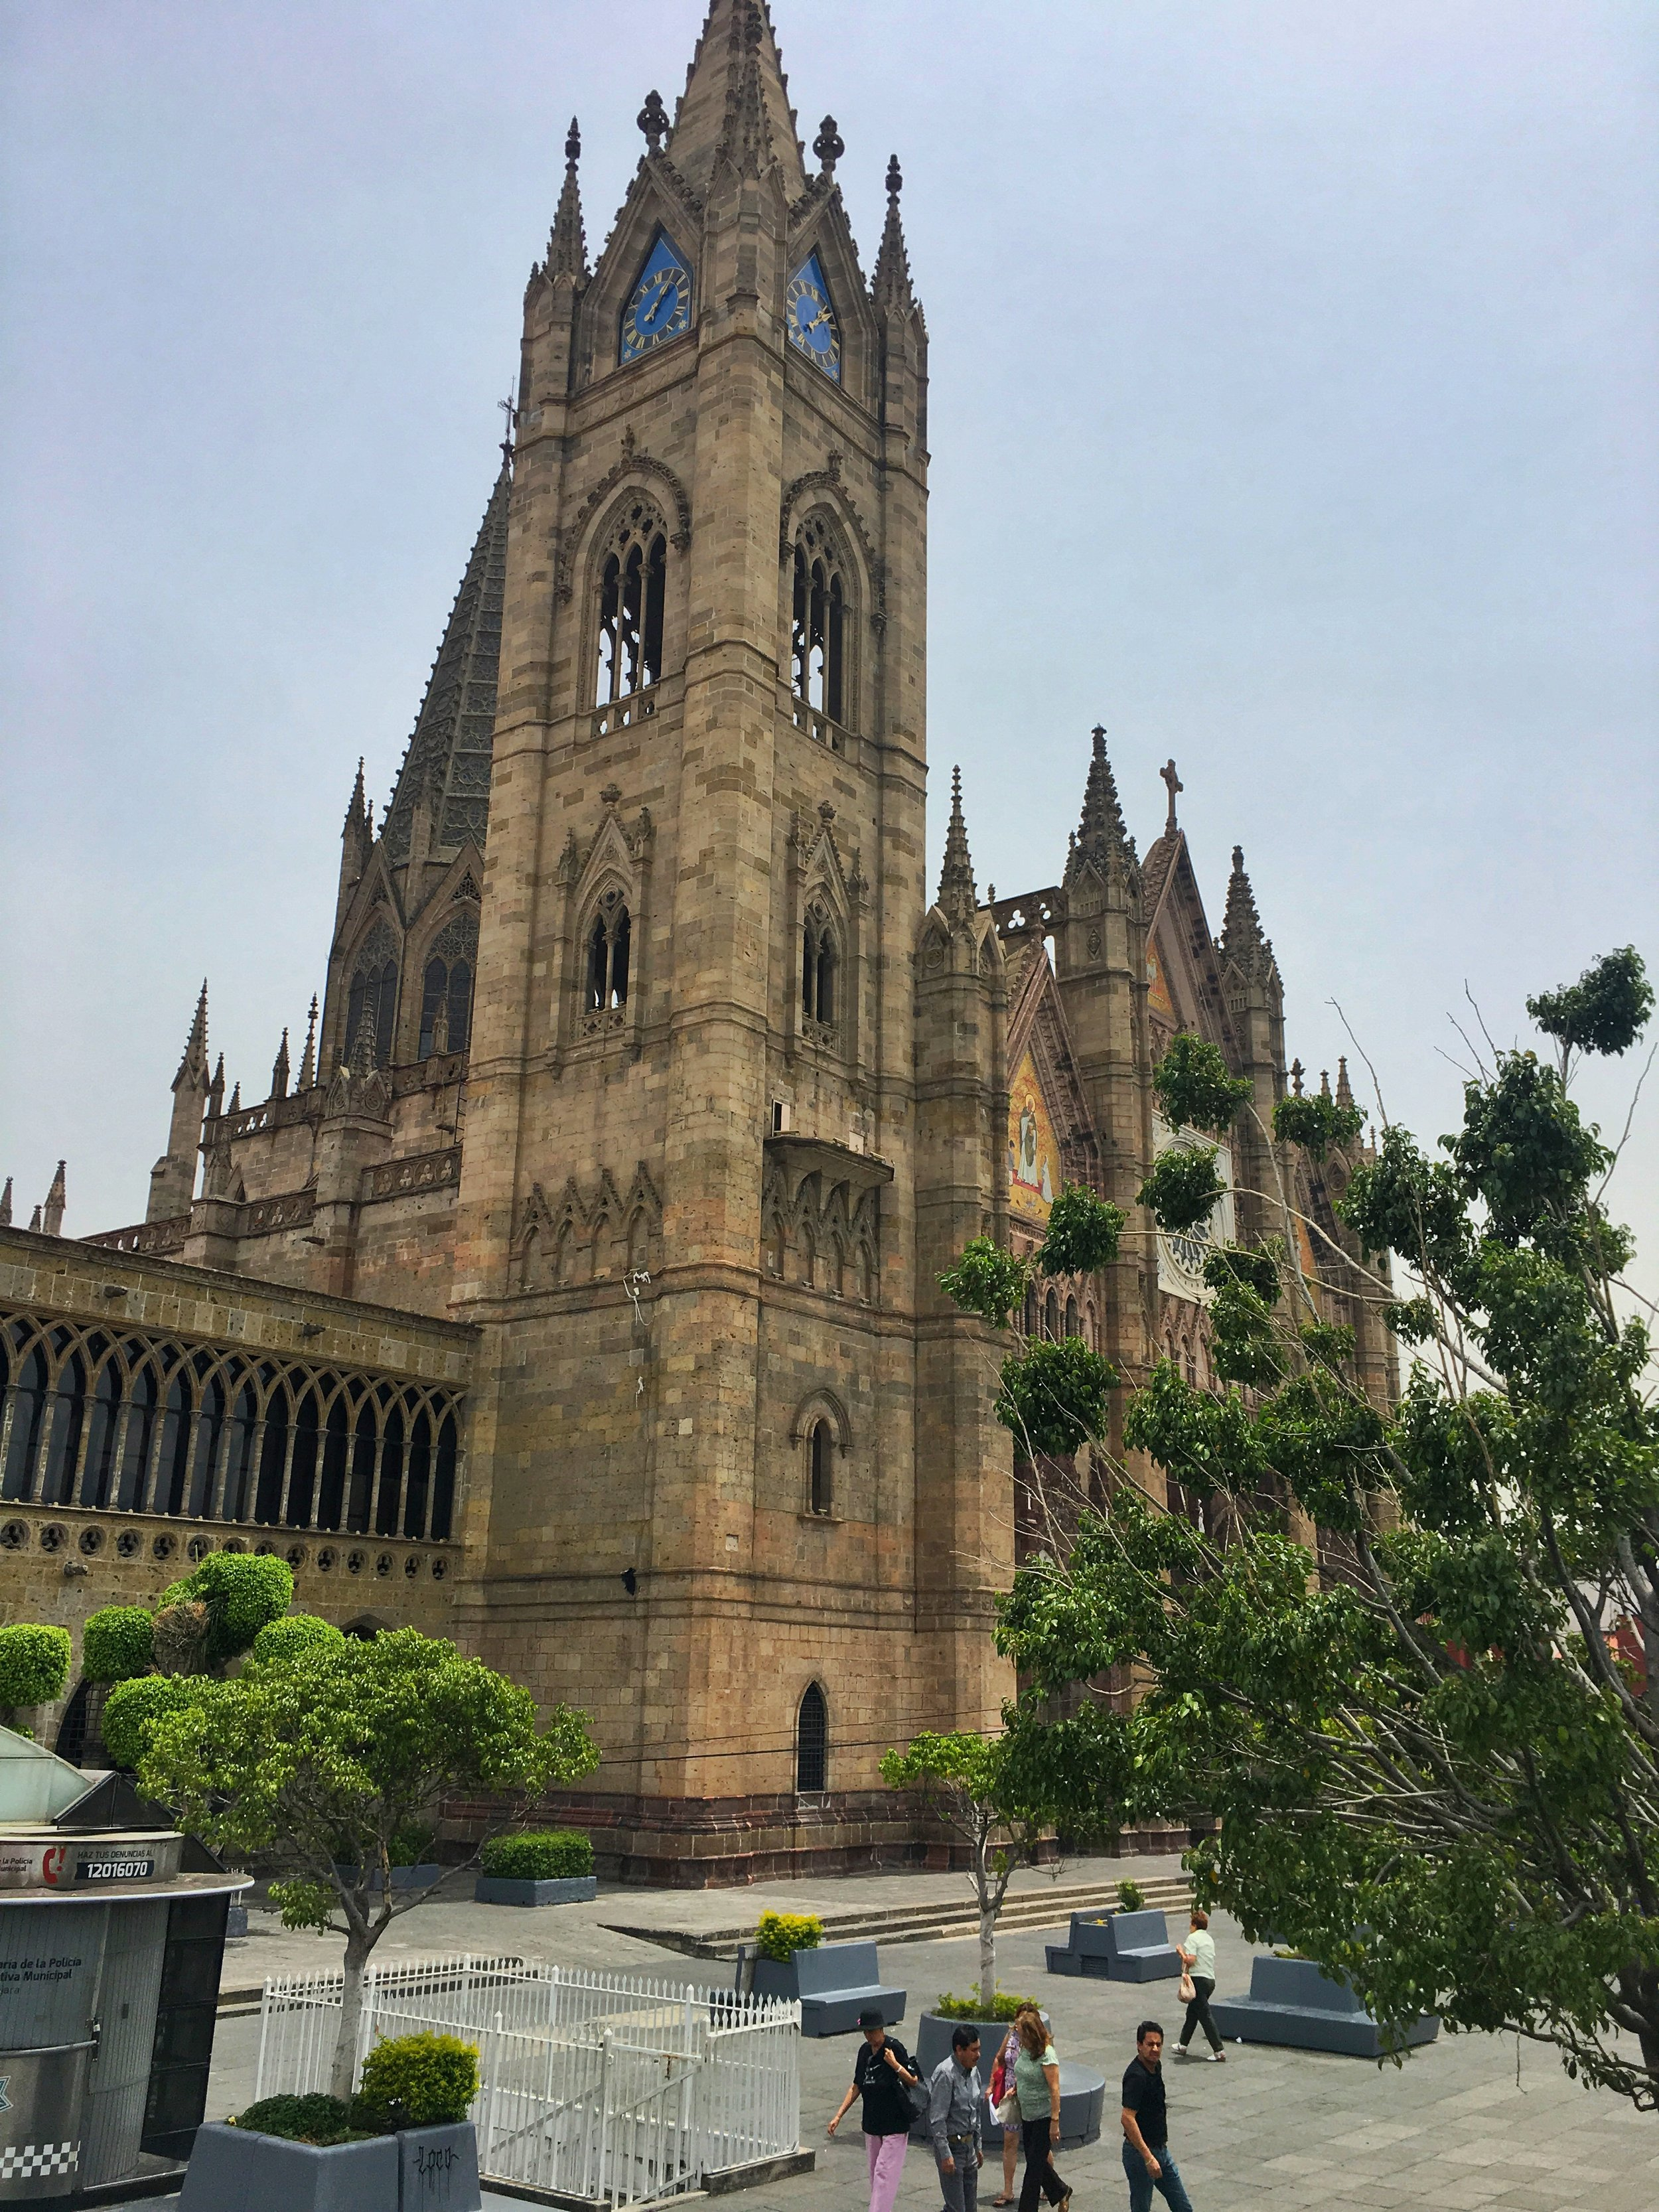 The original cathedral was built in 1541, but destroyed in 1574 during Mass when neighbors fired shots into the air. Some of the bullets fell onto the cathedral and started a fire, severely damaging the building. The new cathedral was completed in February 1618.